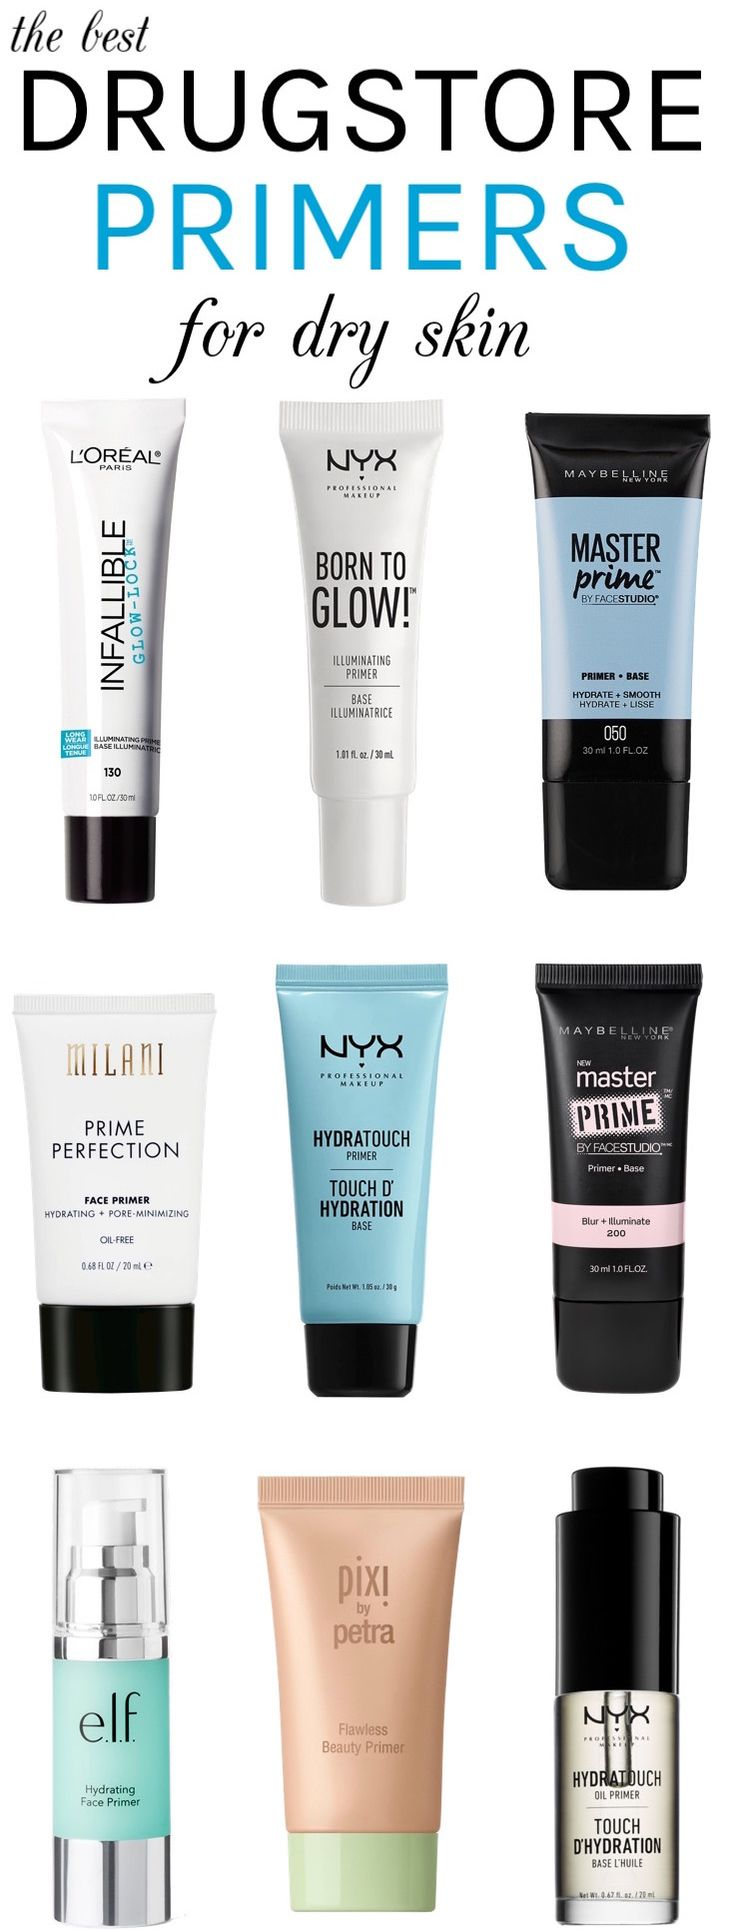 Whether you are struggling with winter dryness or a persistently dry, dull complexion, here are the best drugstore primers for dry skin you need to ace your base! These foundation primers prep your skin perfectly for makeup while packing a good hydration punch! No more flaky foundation!